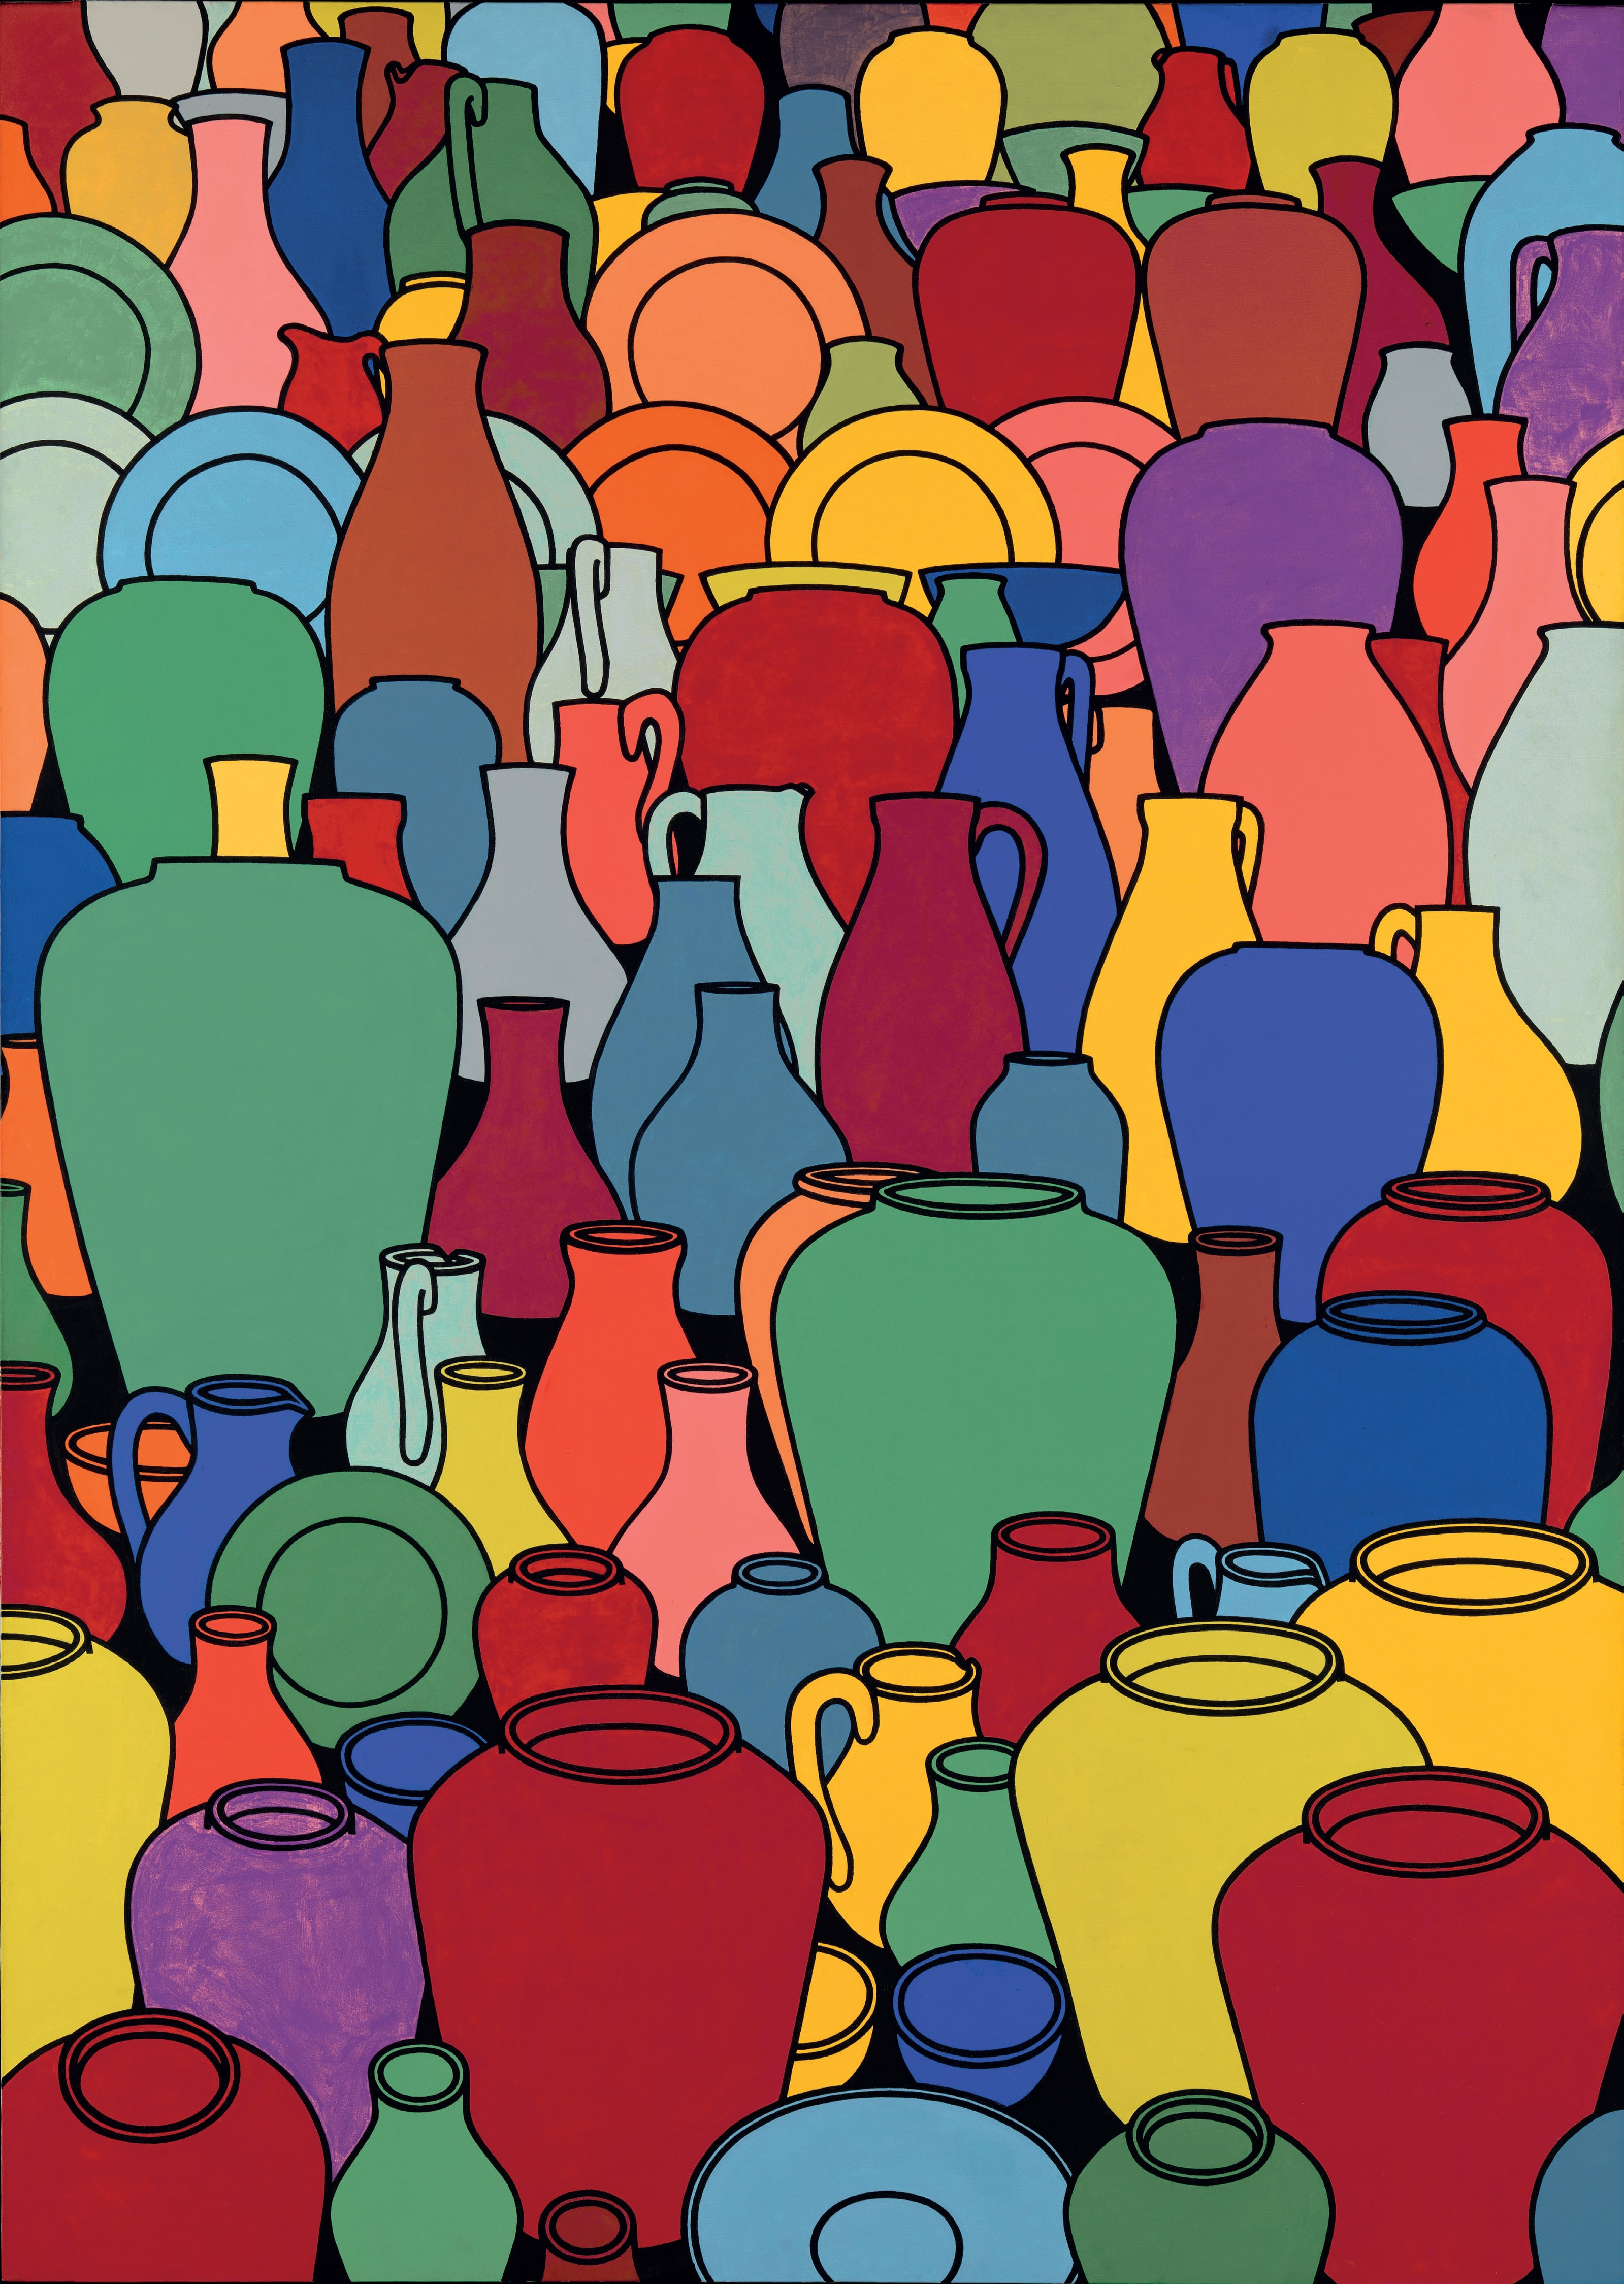 9. Patrick Caulfield, Pottery, 1969, Tate - © The Estate of Patrick Caulfield. All Rights Reserved, DACS 2014. Image courtesy of Tate, London 2014